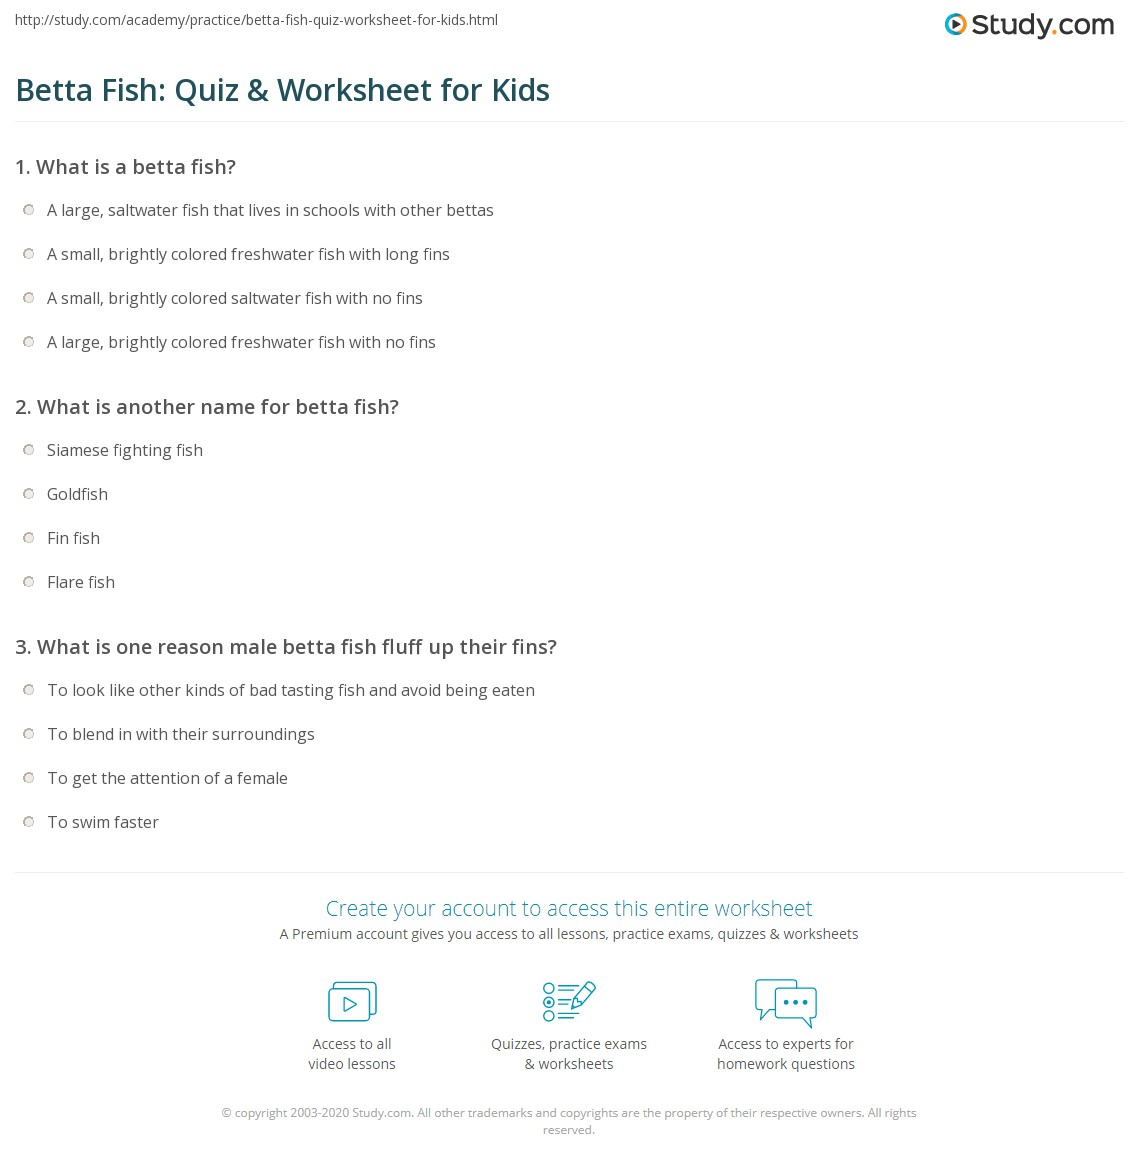 Freshwater fish facts - Print Betta Fish Facts Lesson For Kids Worksheet